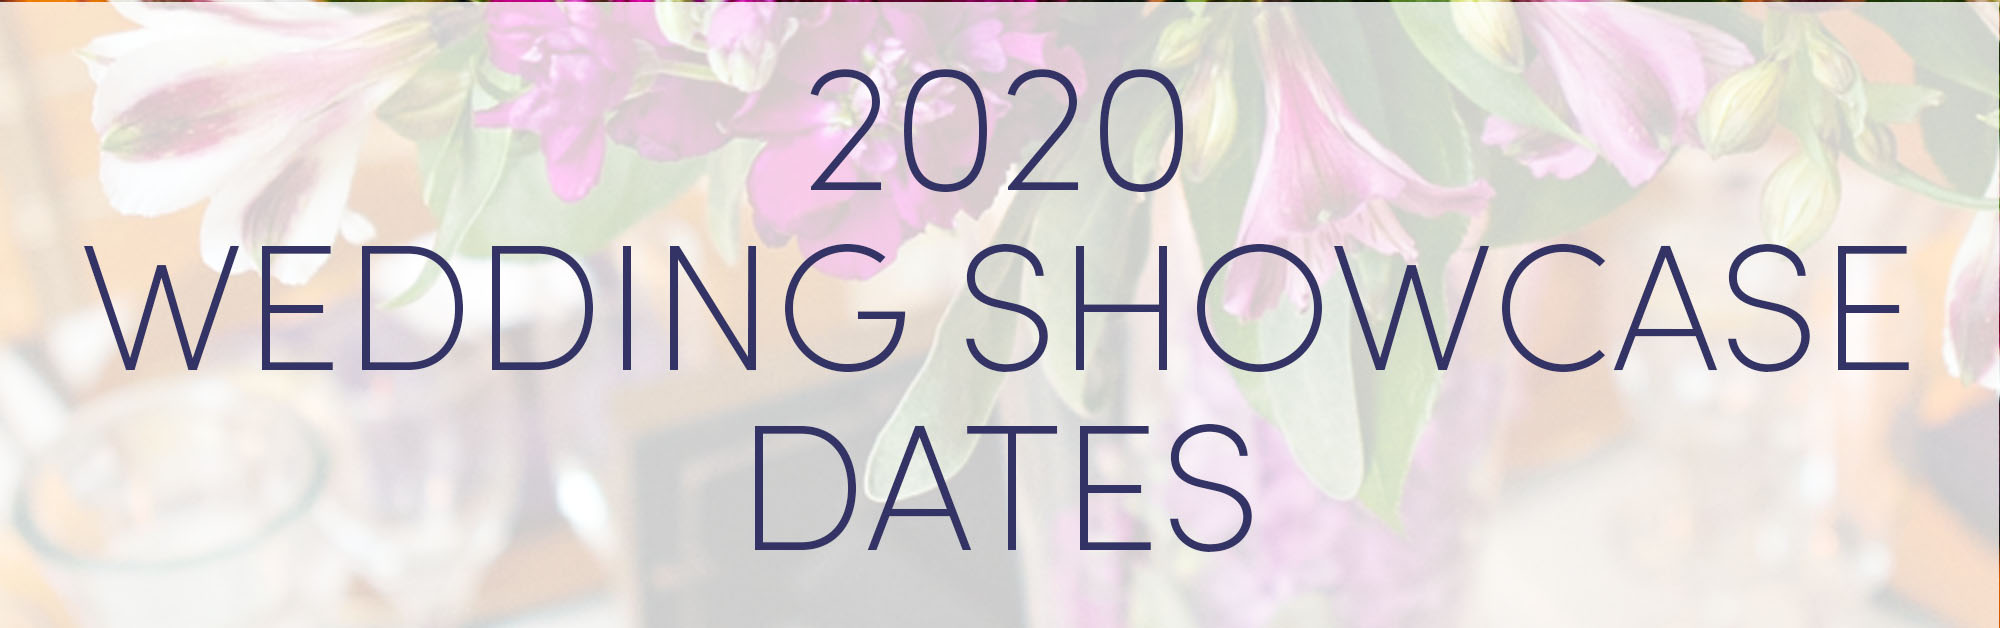 Wedding Showcase Dates 2020 Wedgewood Weddings-1